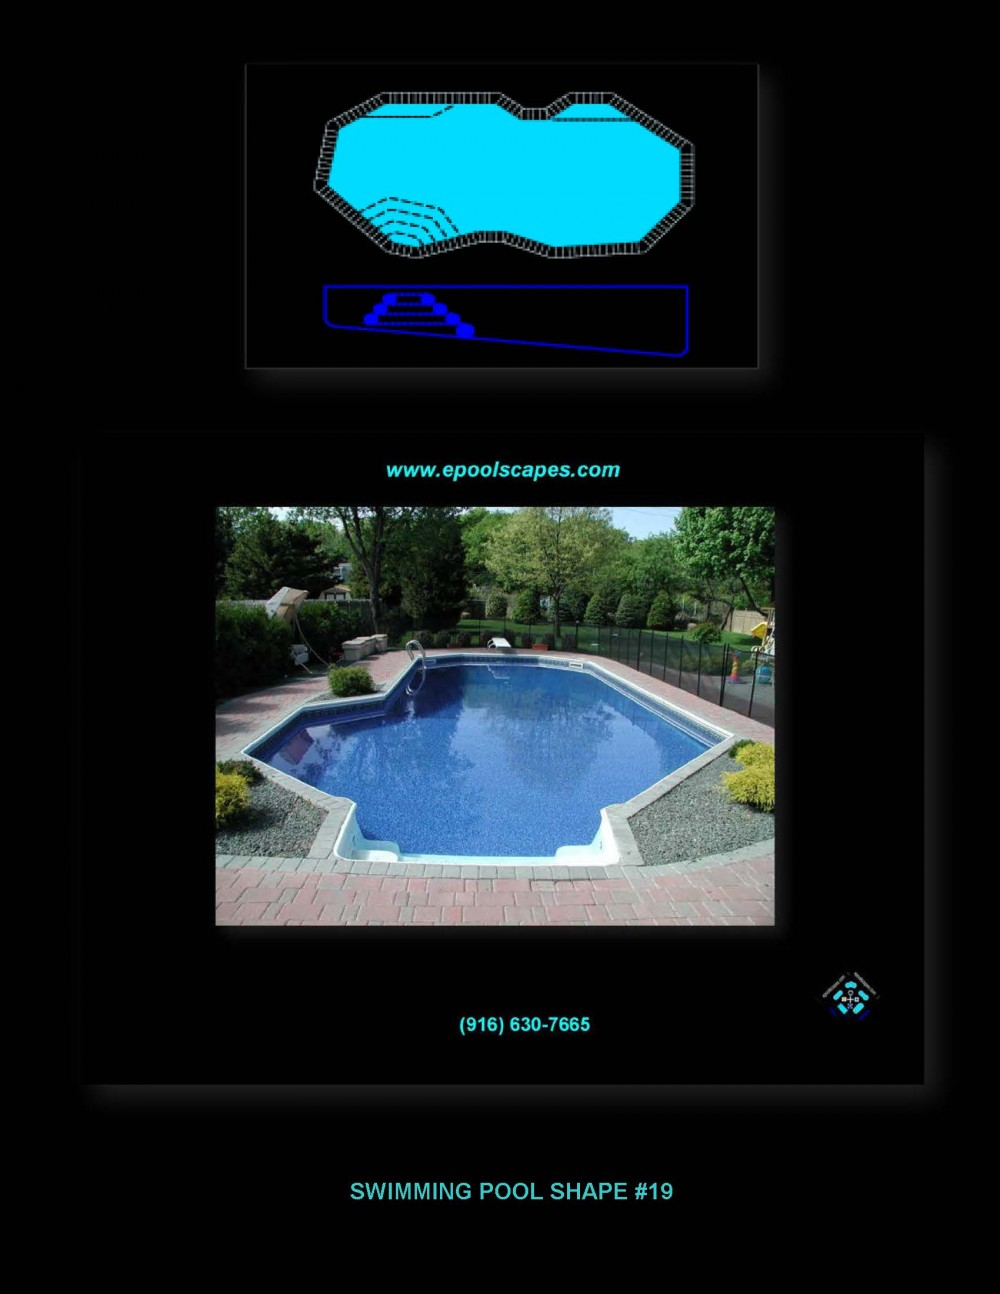 Pool Shape #19